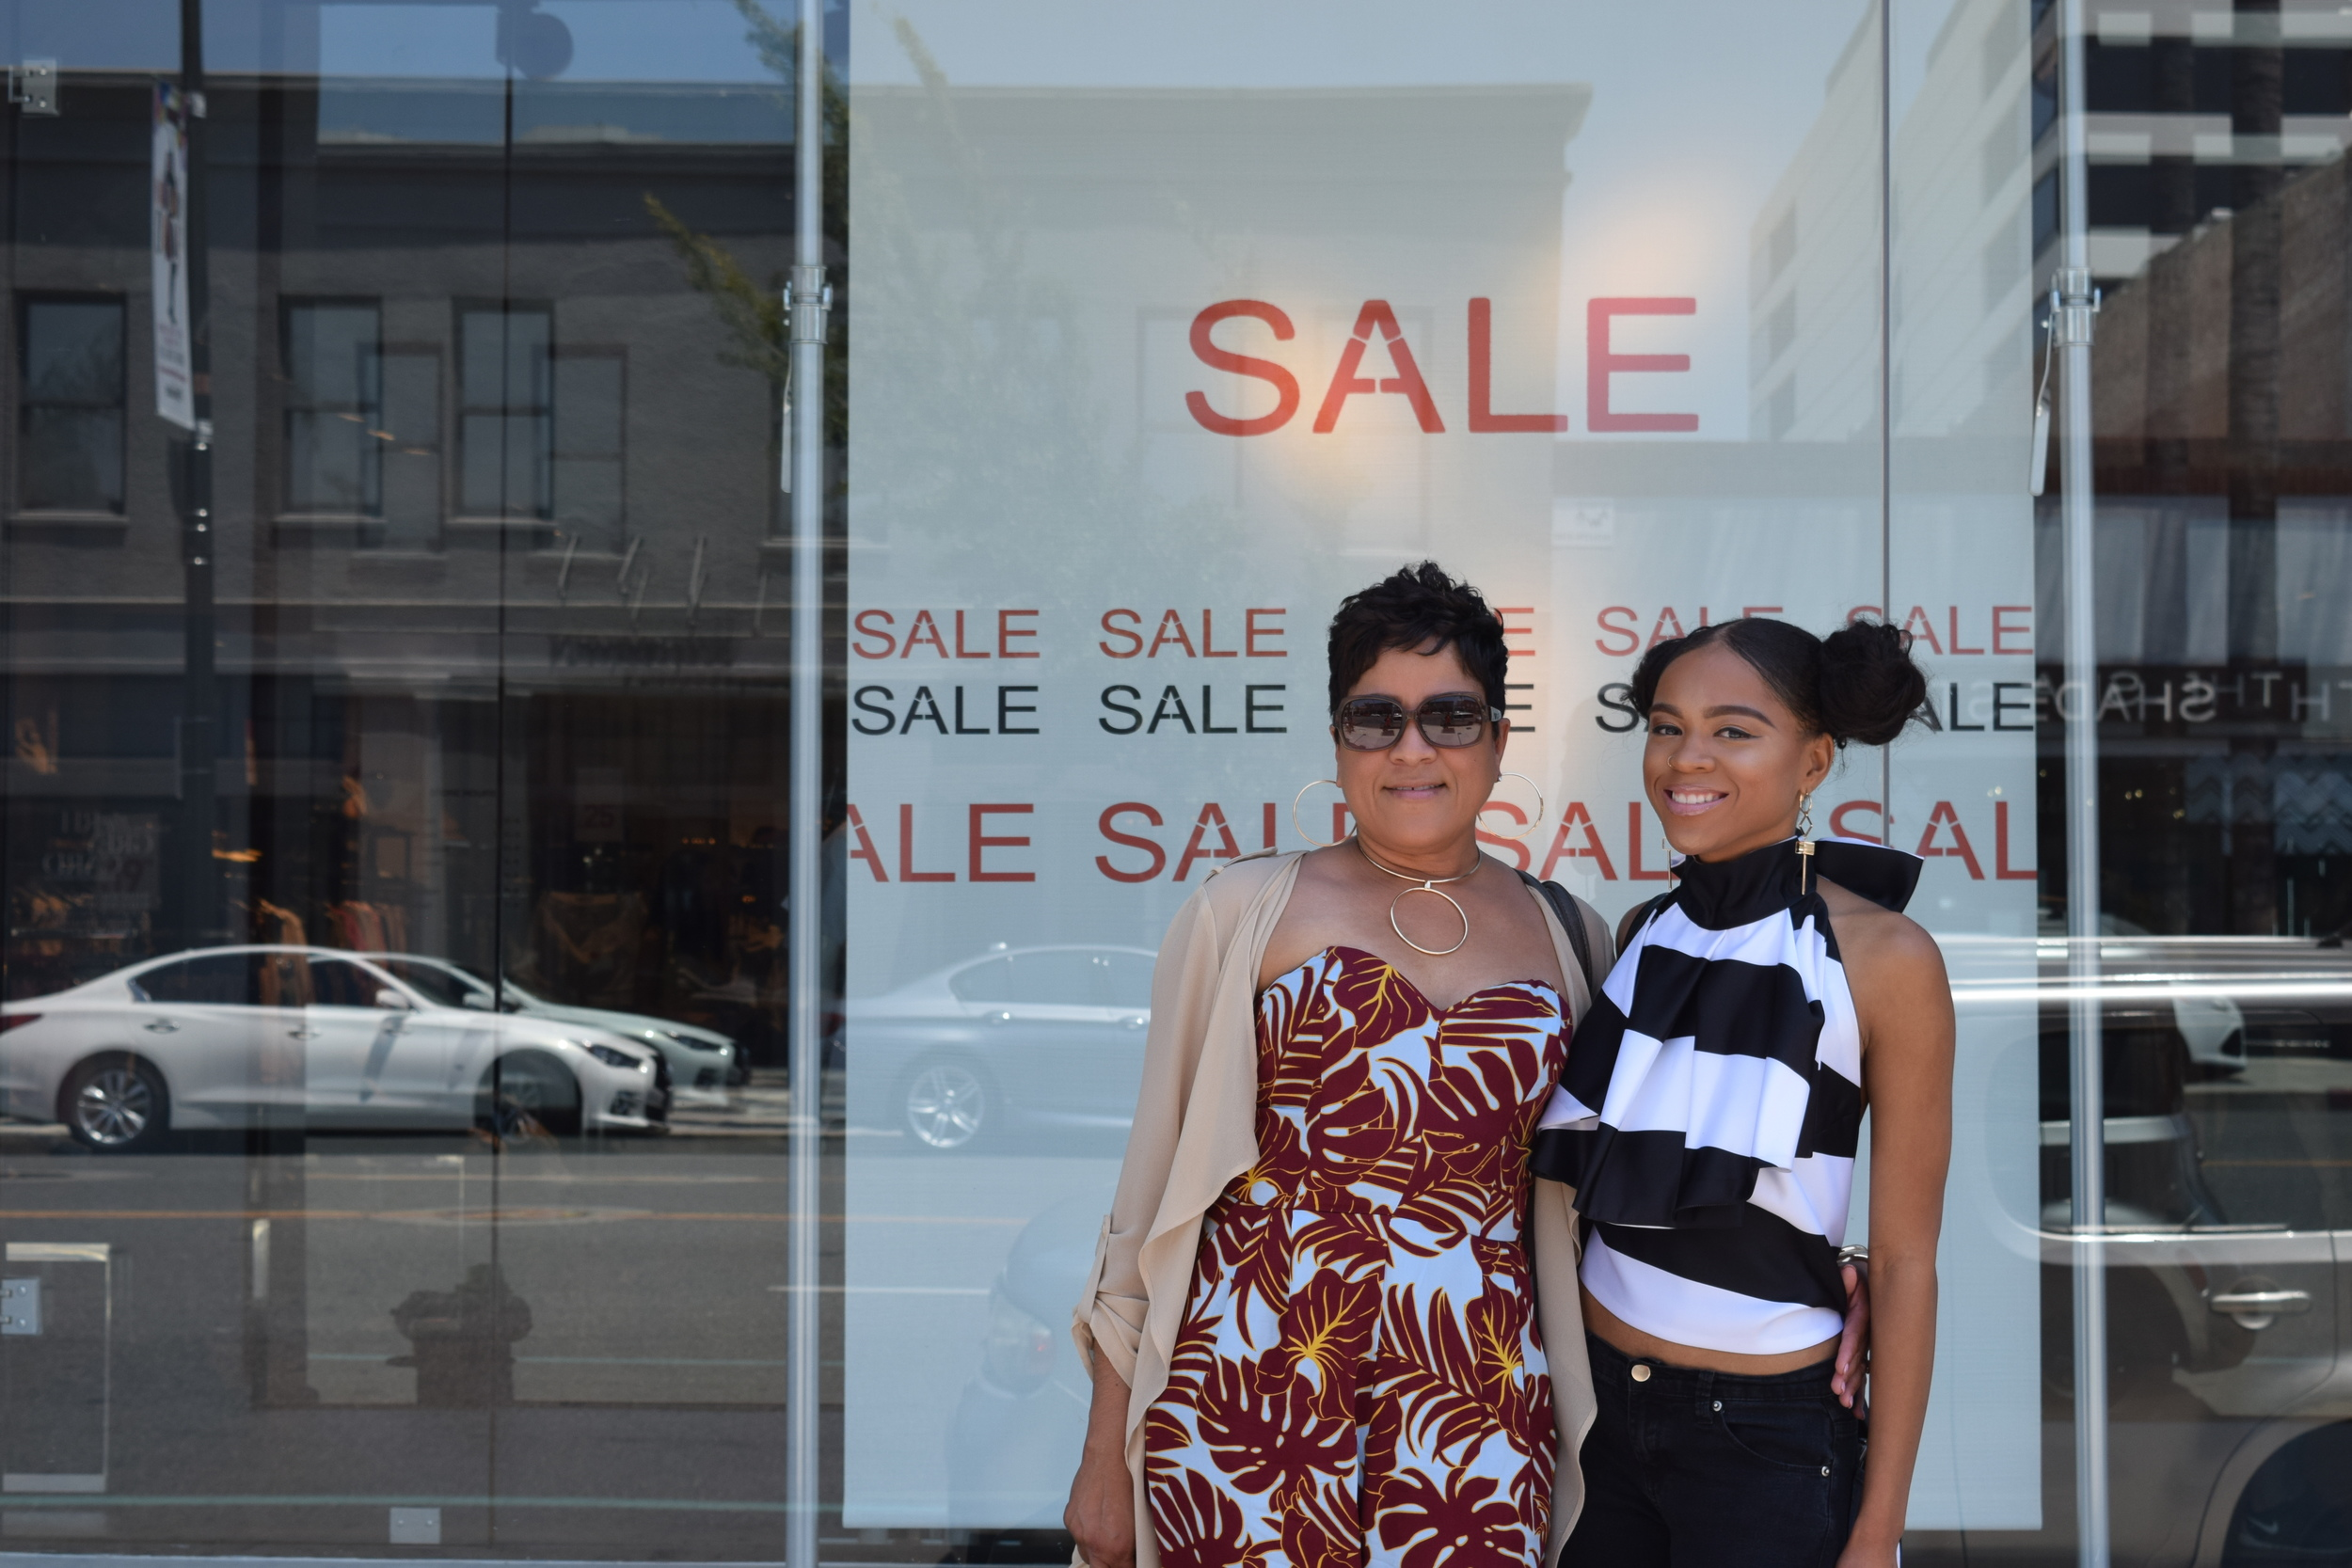 Me and my baby girl in old town Pasadena stopping to take a few pics in front of Zara's!